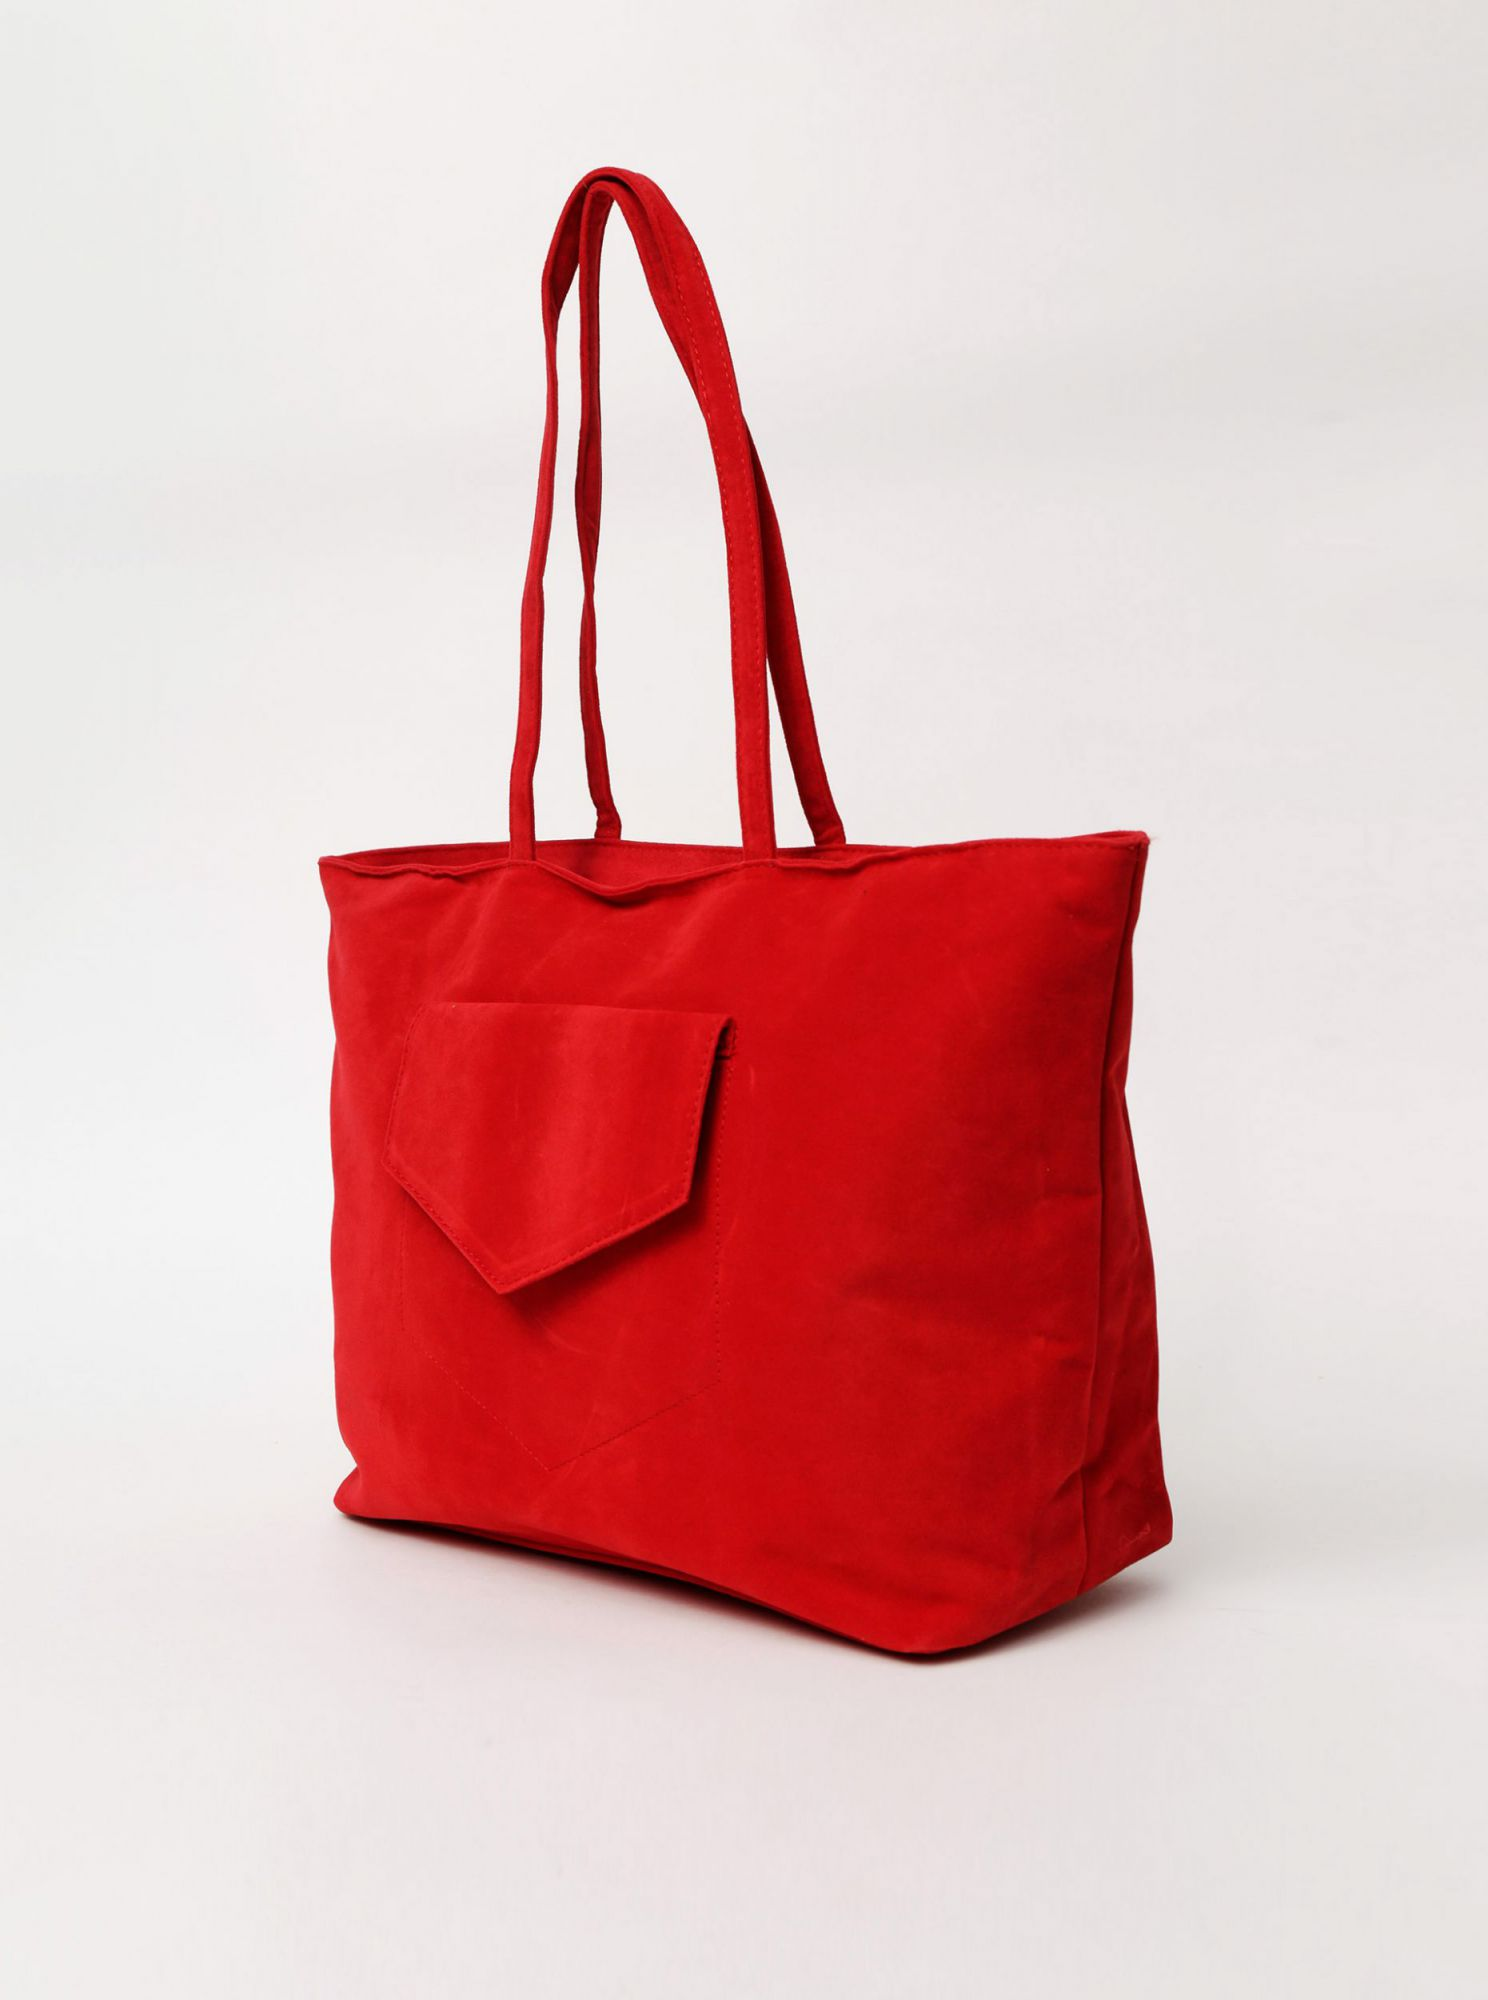 Borsa rossa in camoscio Haily's Shoppy